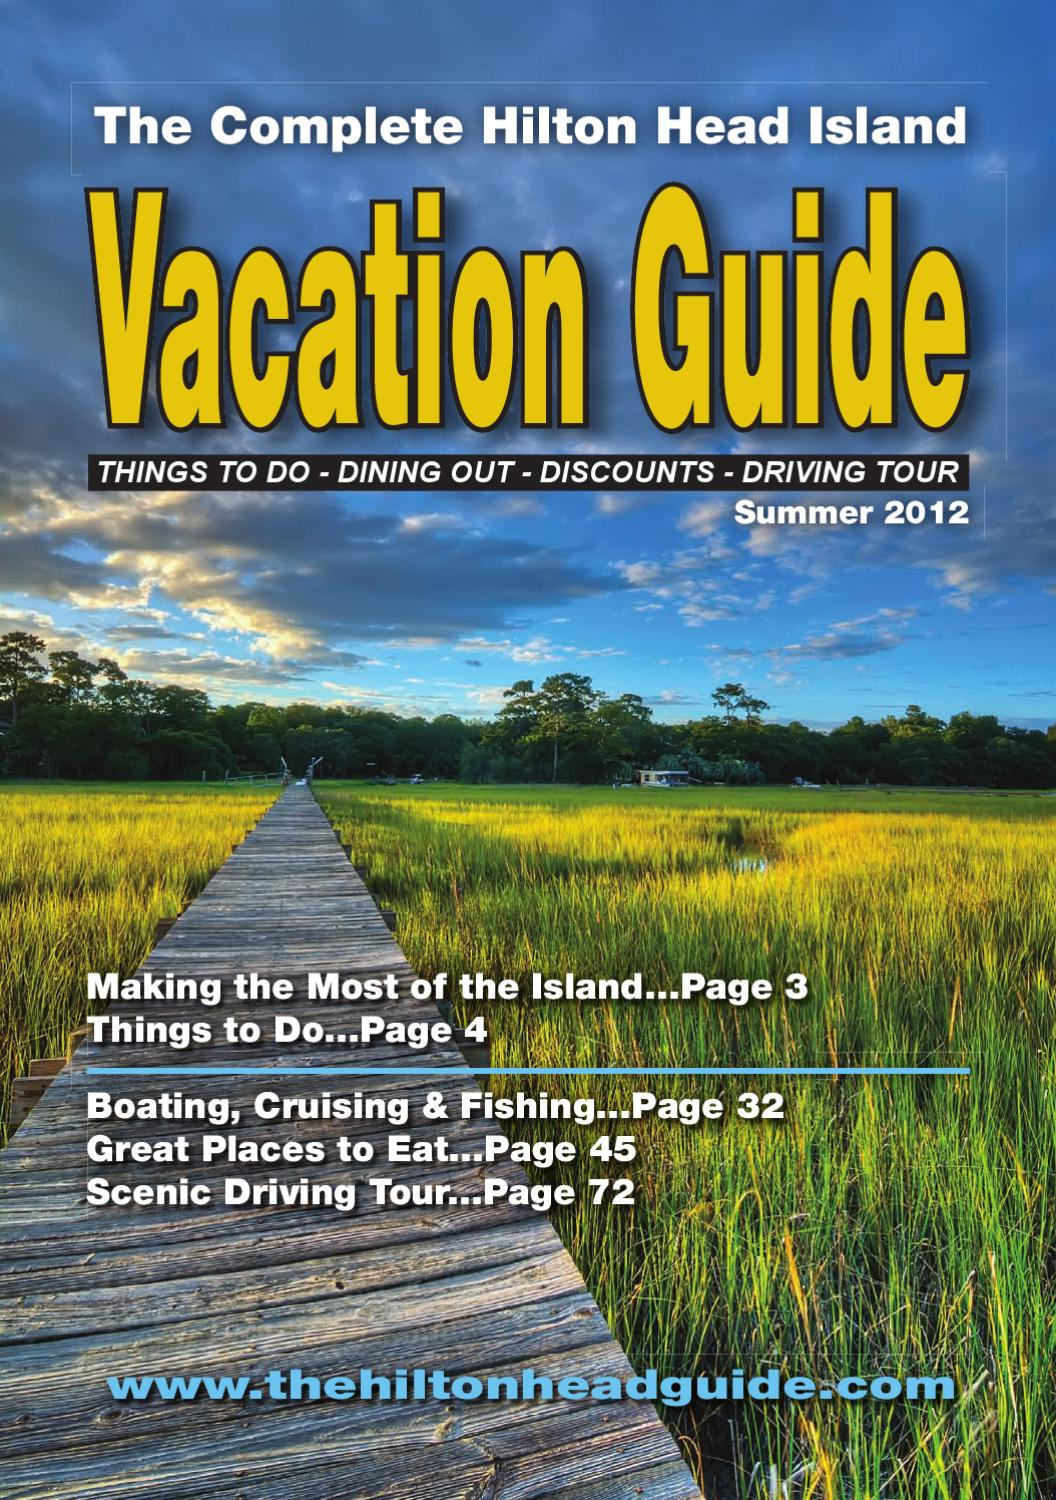 Pino's Vino E Cucina Zomato Vacation Guide By Hilton Head Monthly Issuu